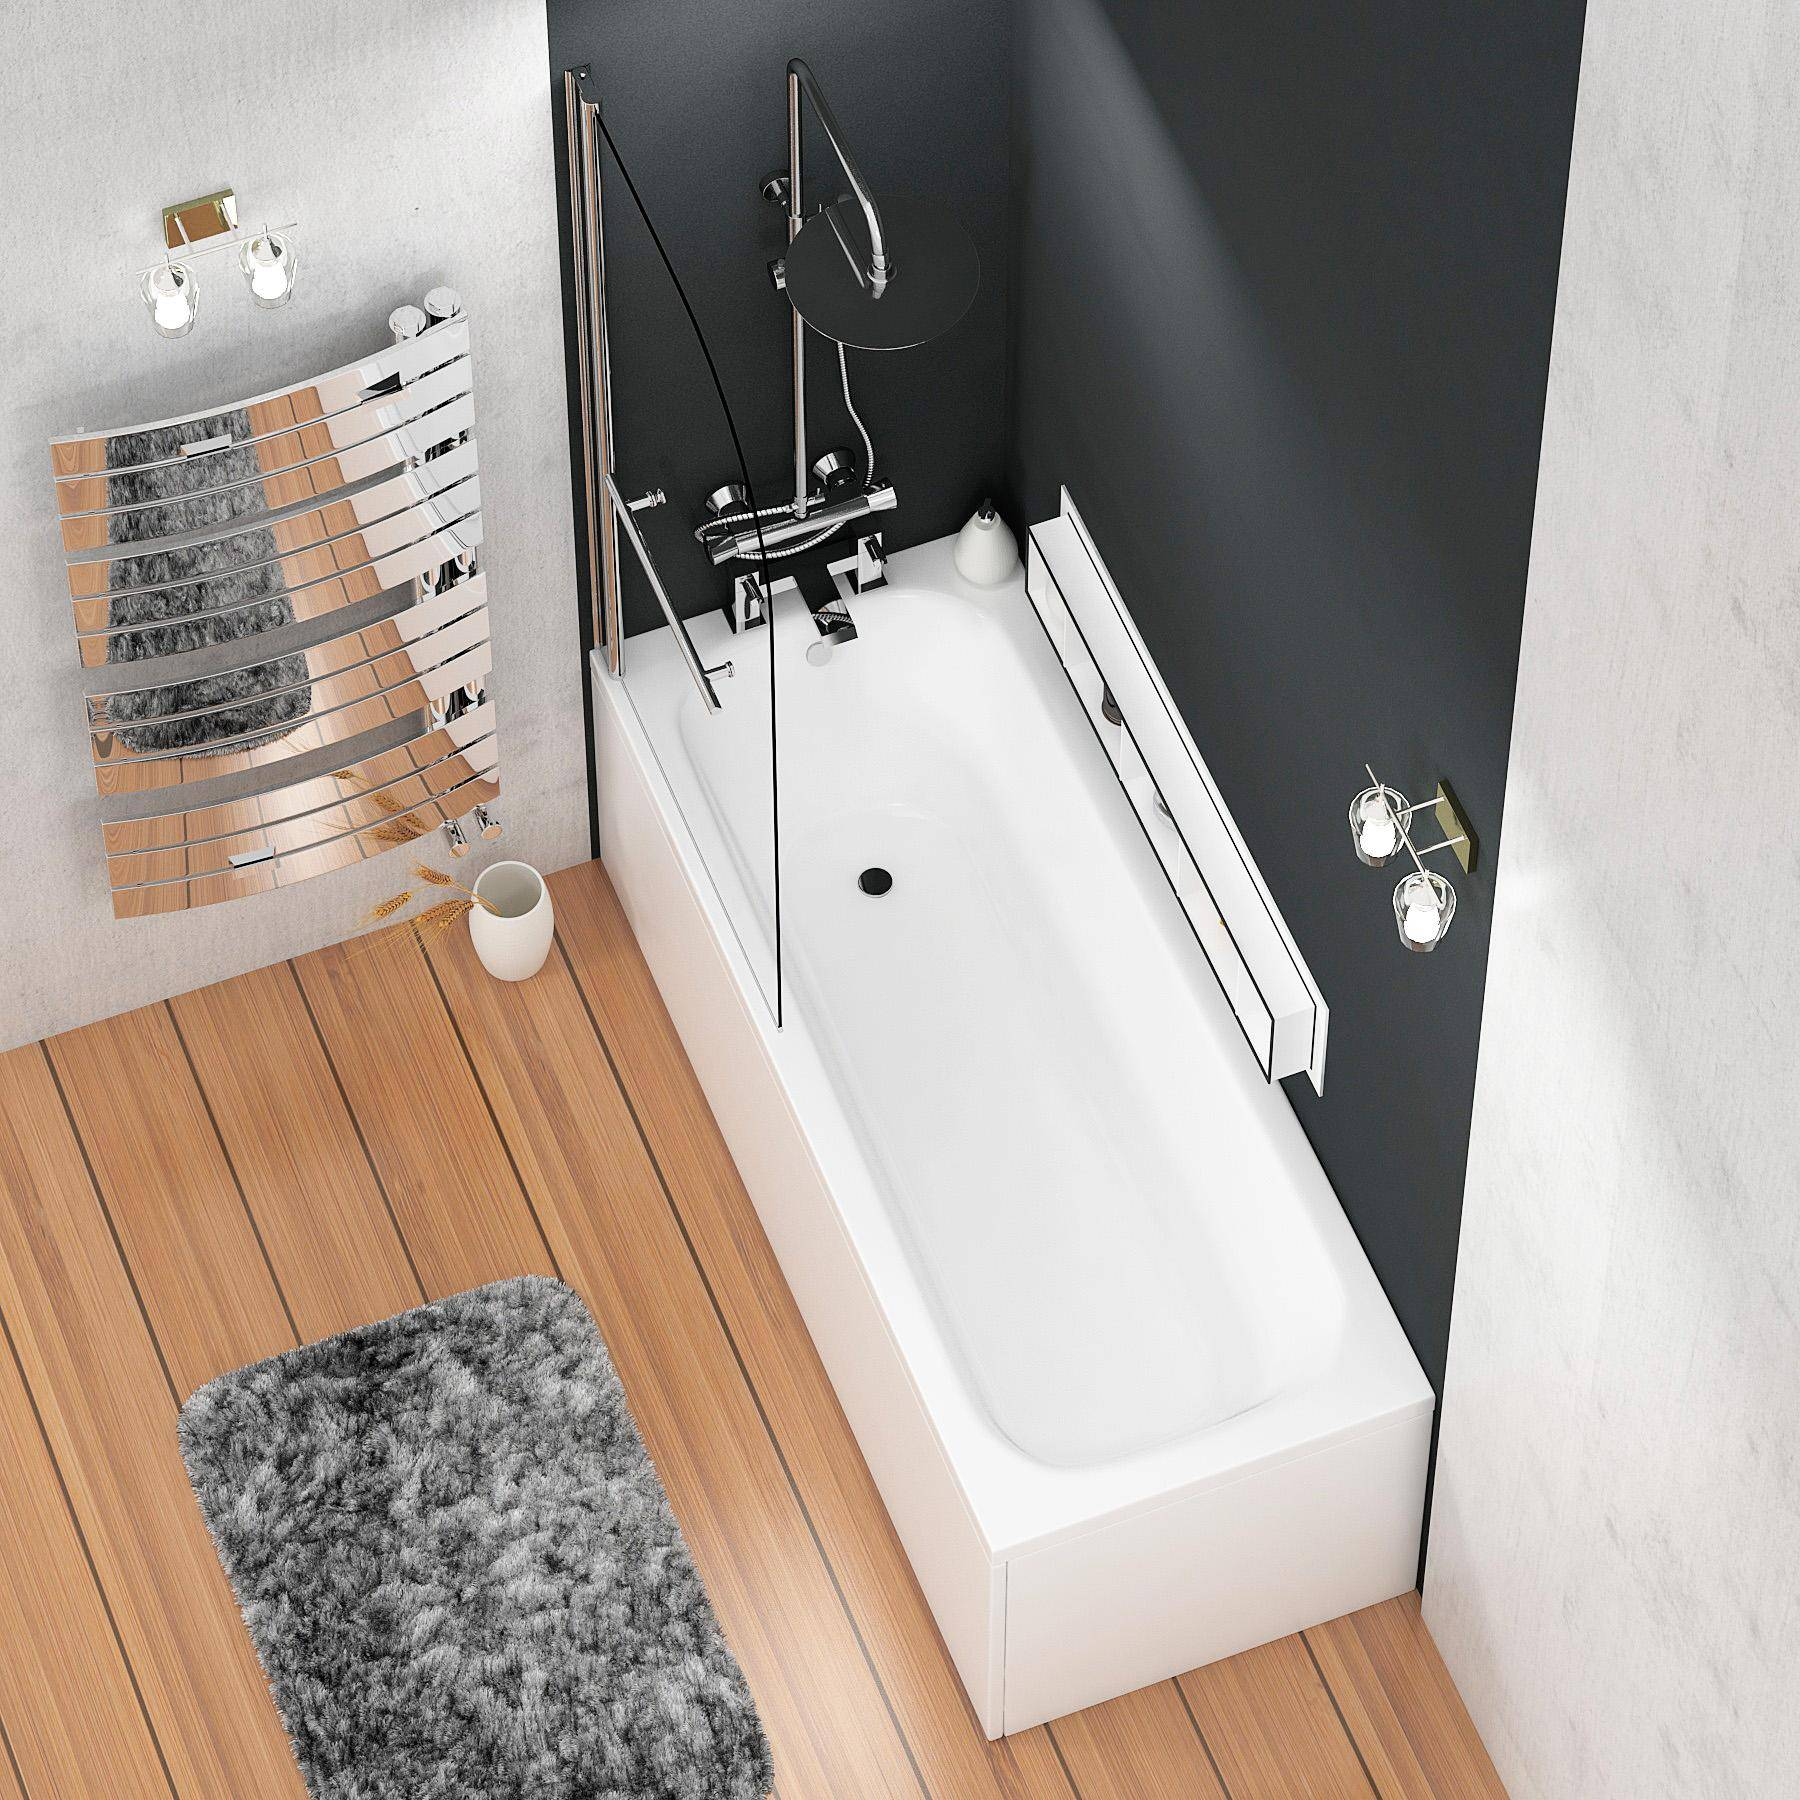 Royal Bathrooms Breeze Round Single Ended Shower Bath 1800 x 800mm Acrylic Inc Round Top Shower Bath Screen with Towel Rail + Front and End Panel